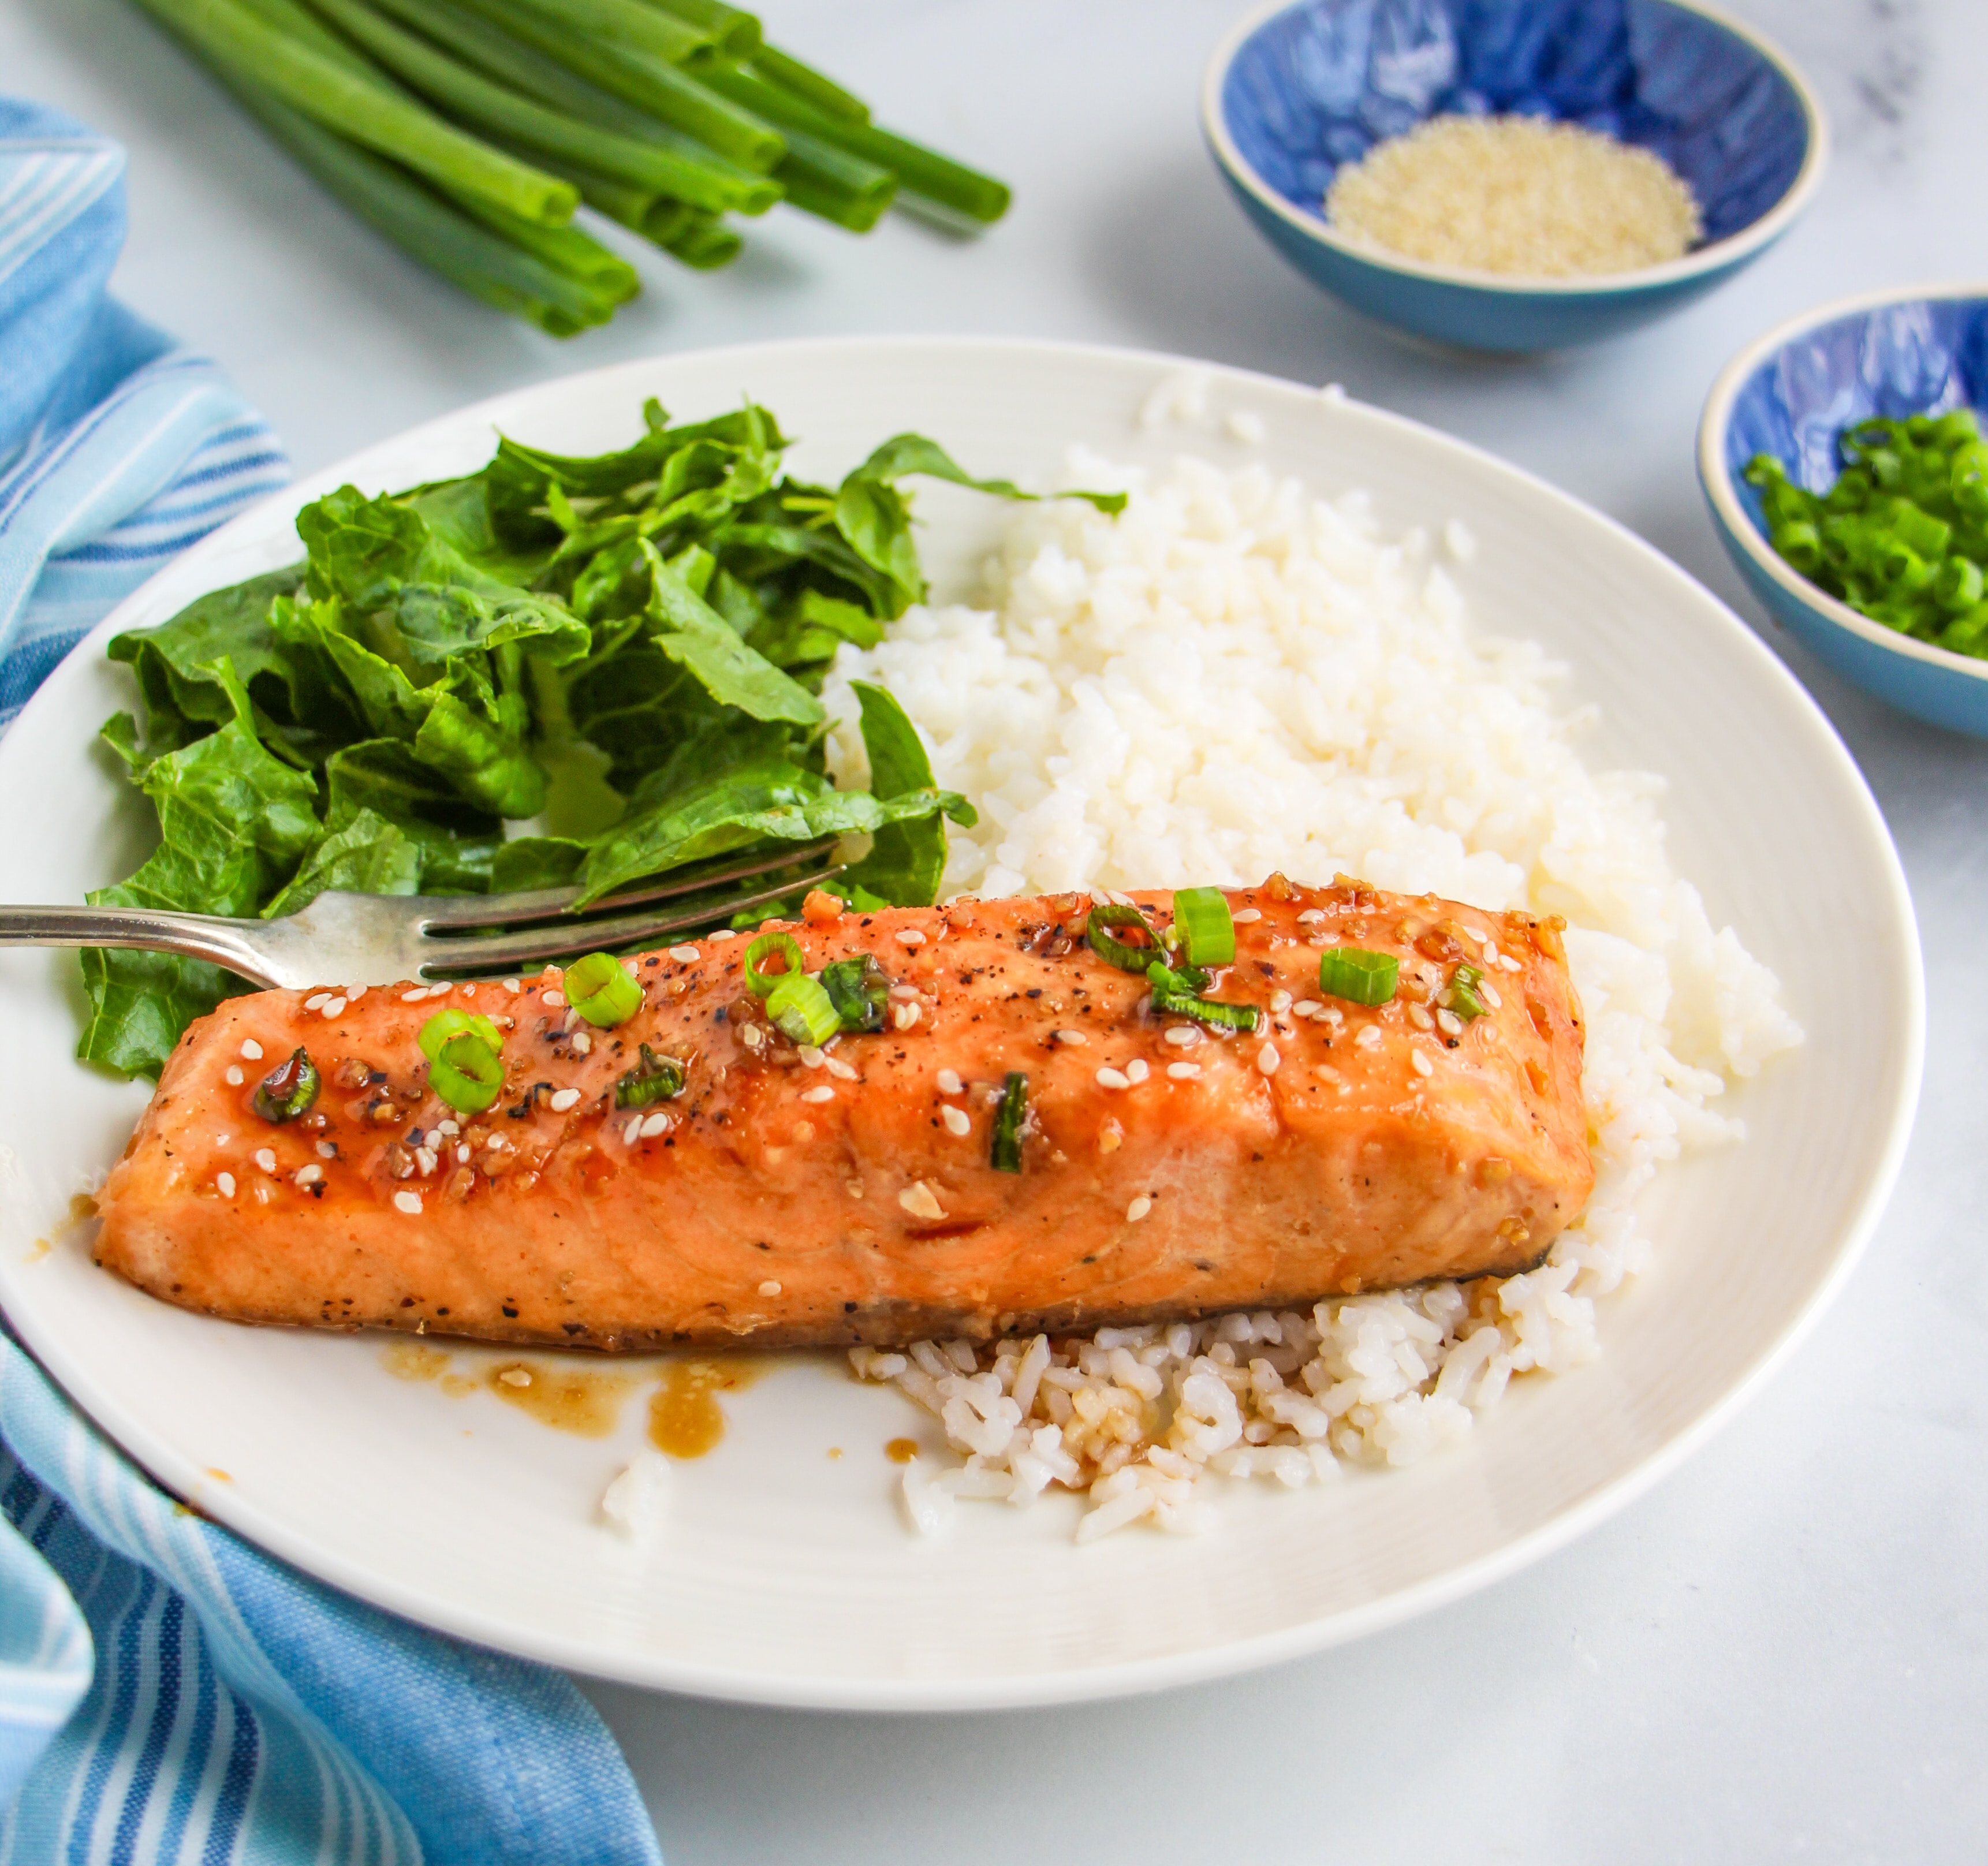 A single piece of prepared salmon on a bed or rice with a green salad on a white dish.